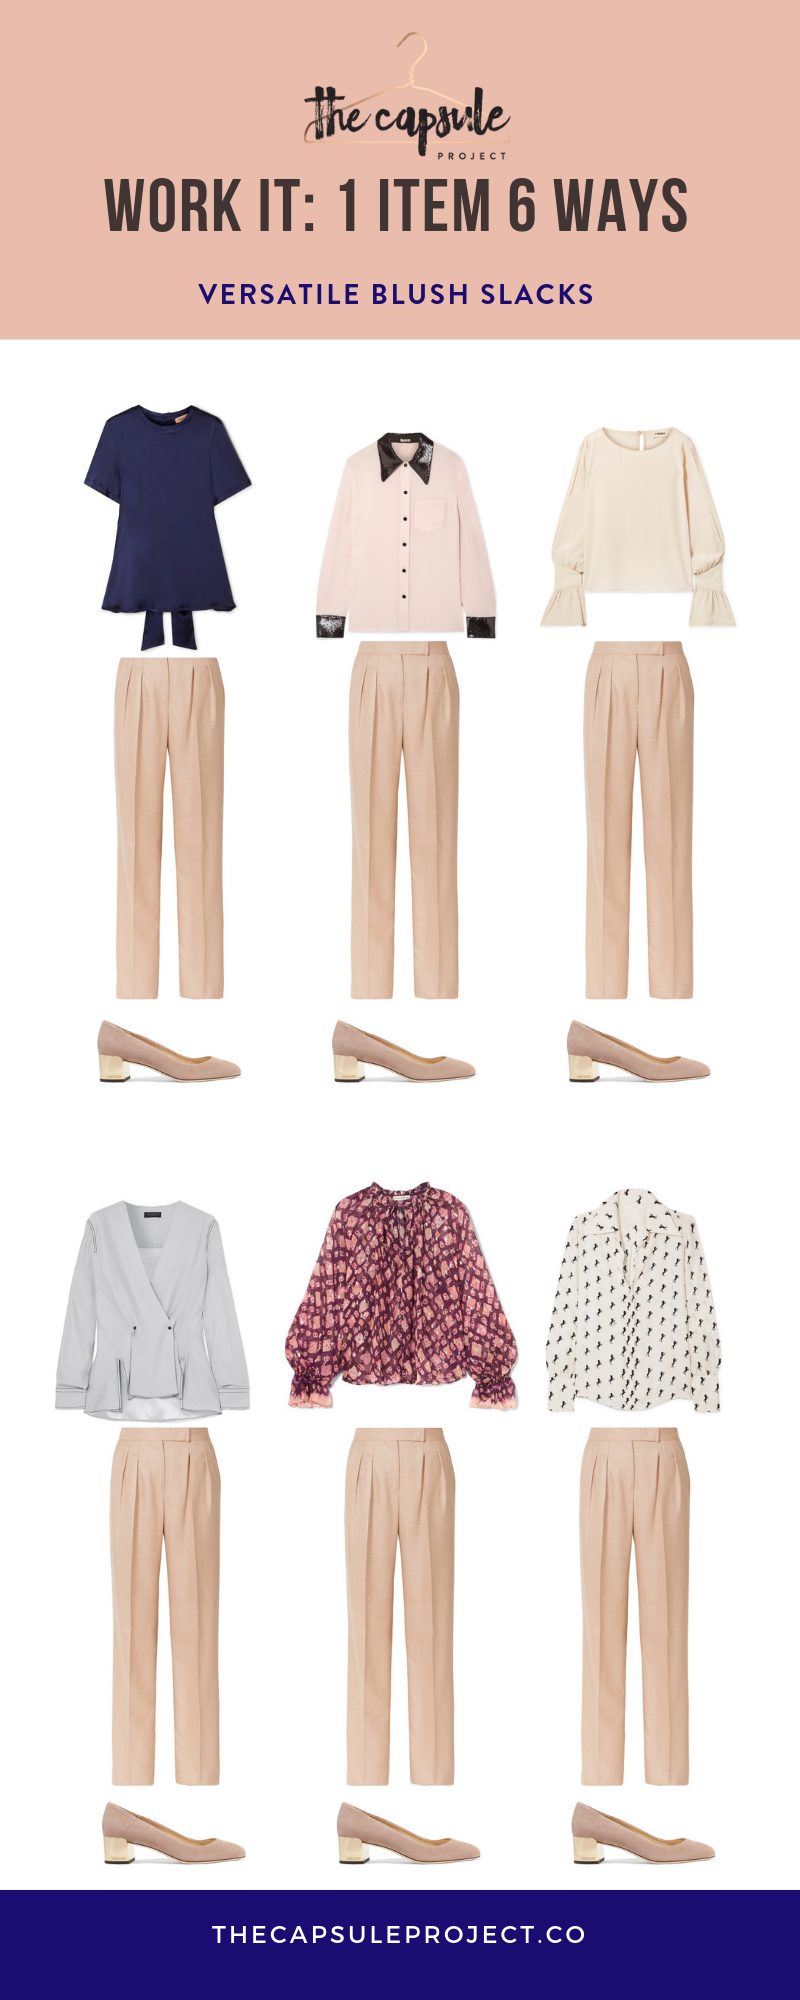 BLUSH SLACKS_ 1 ITEM 6 WAYS.png